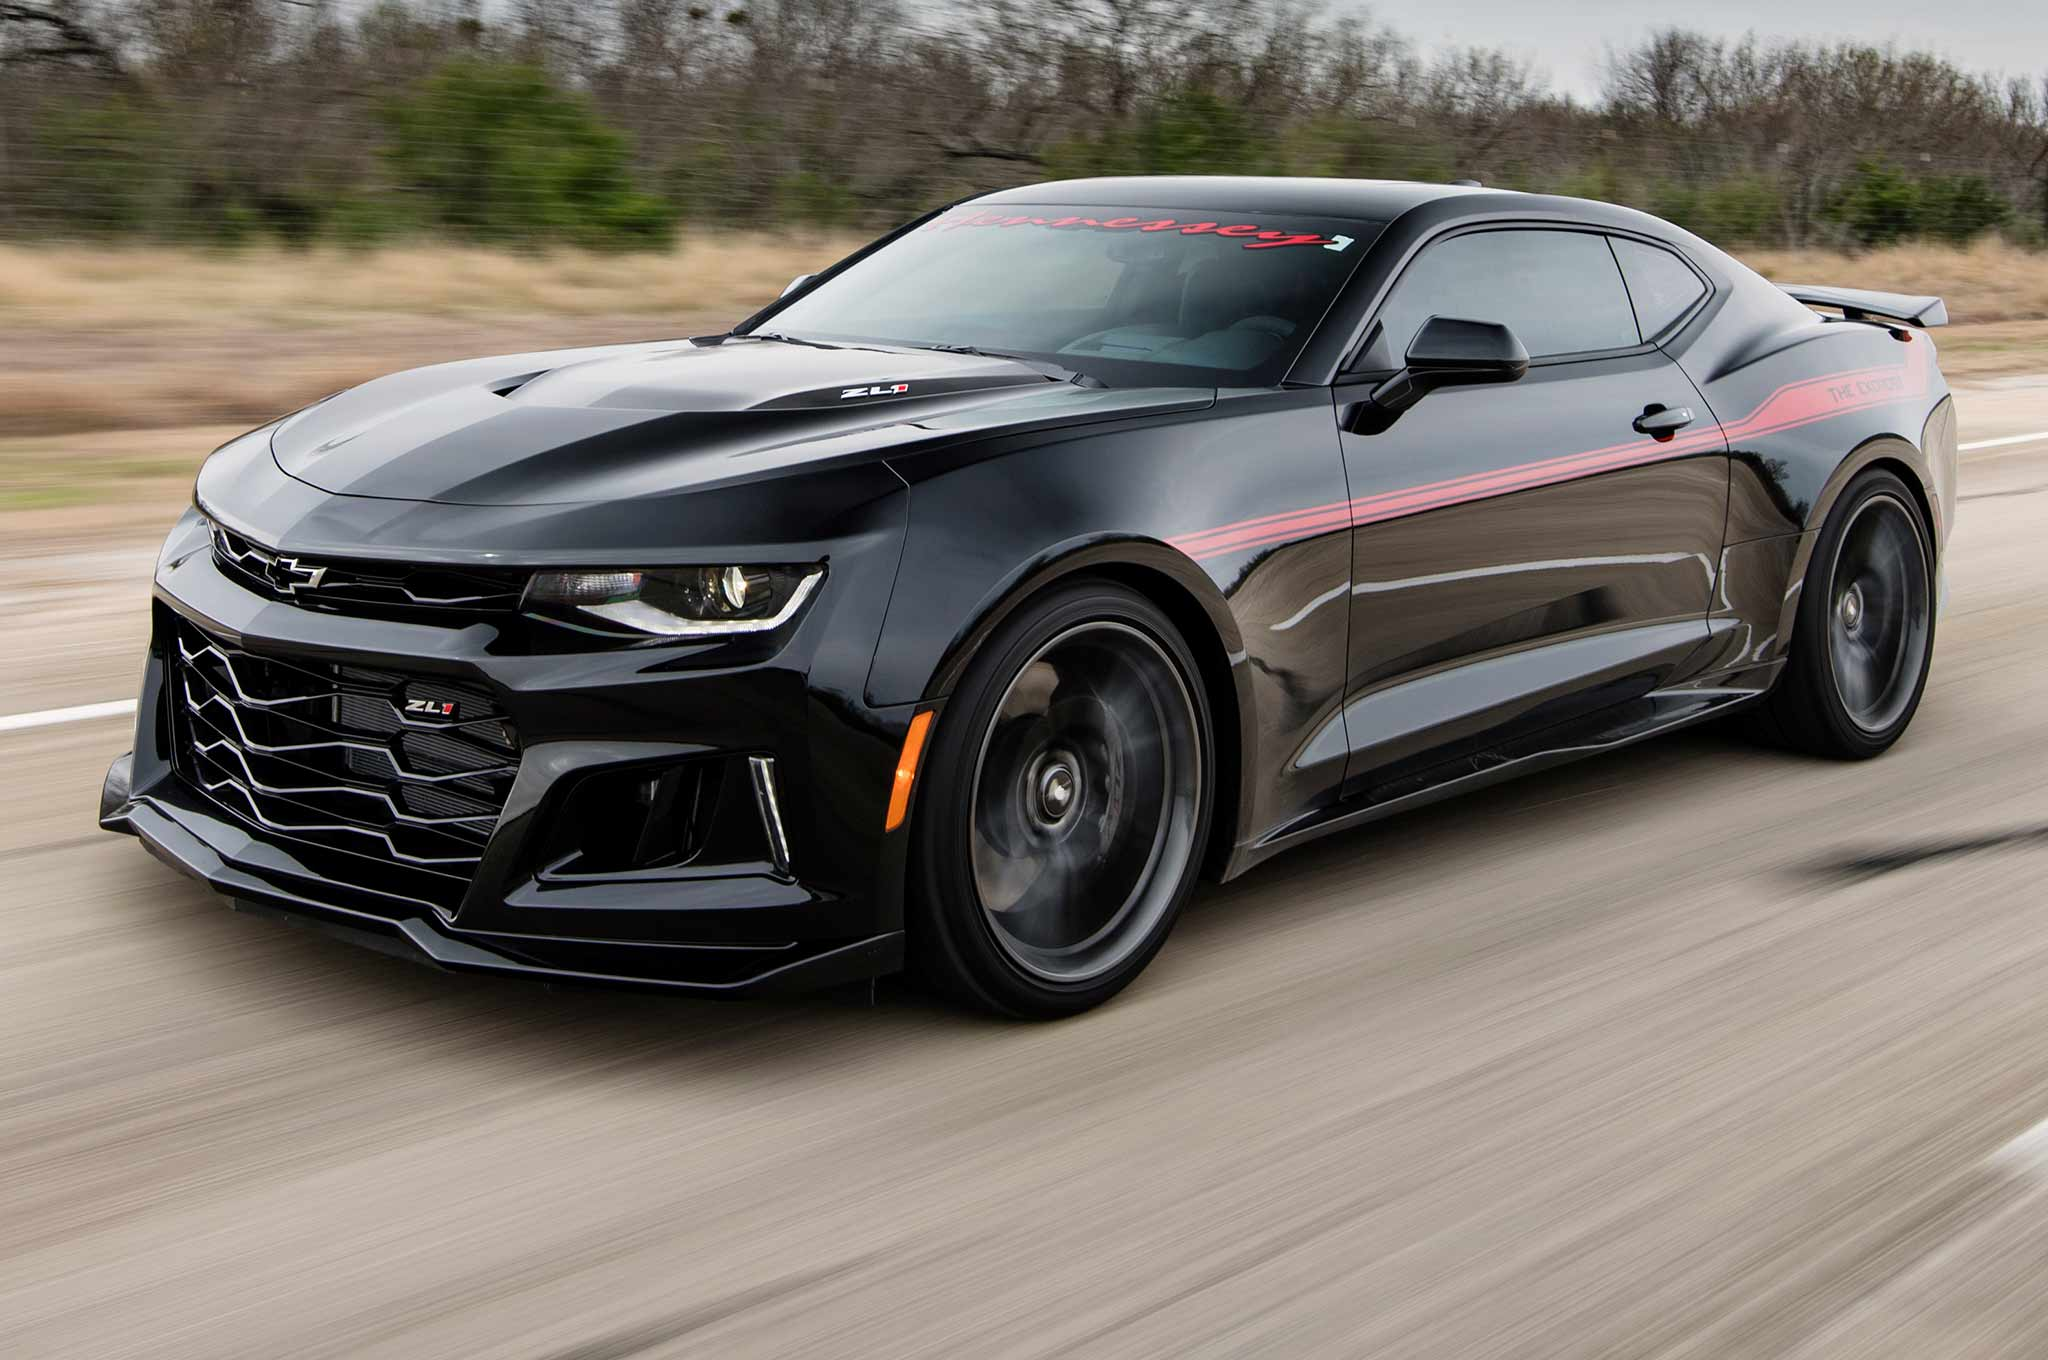 Hennessey Exorcist Chevrolet Camaro ZL1 Top Speed Run 17